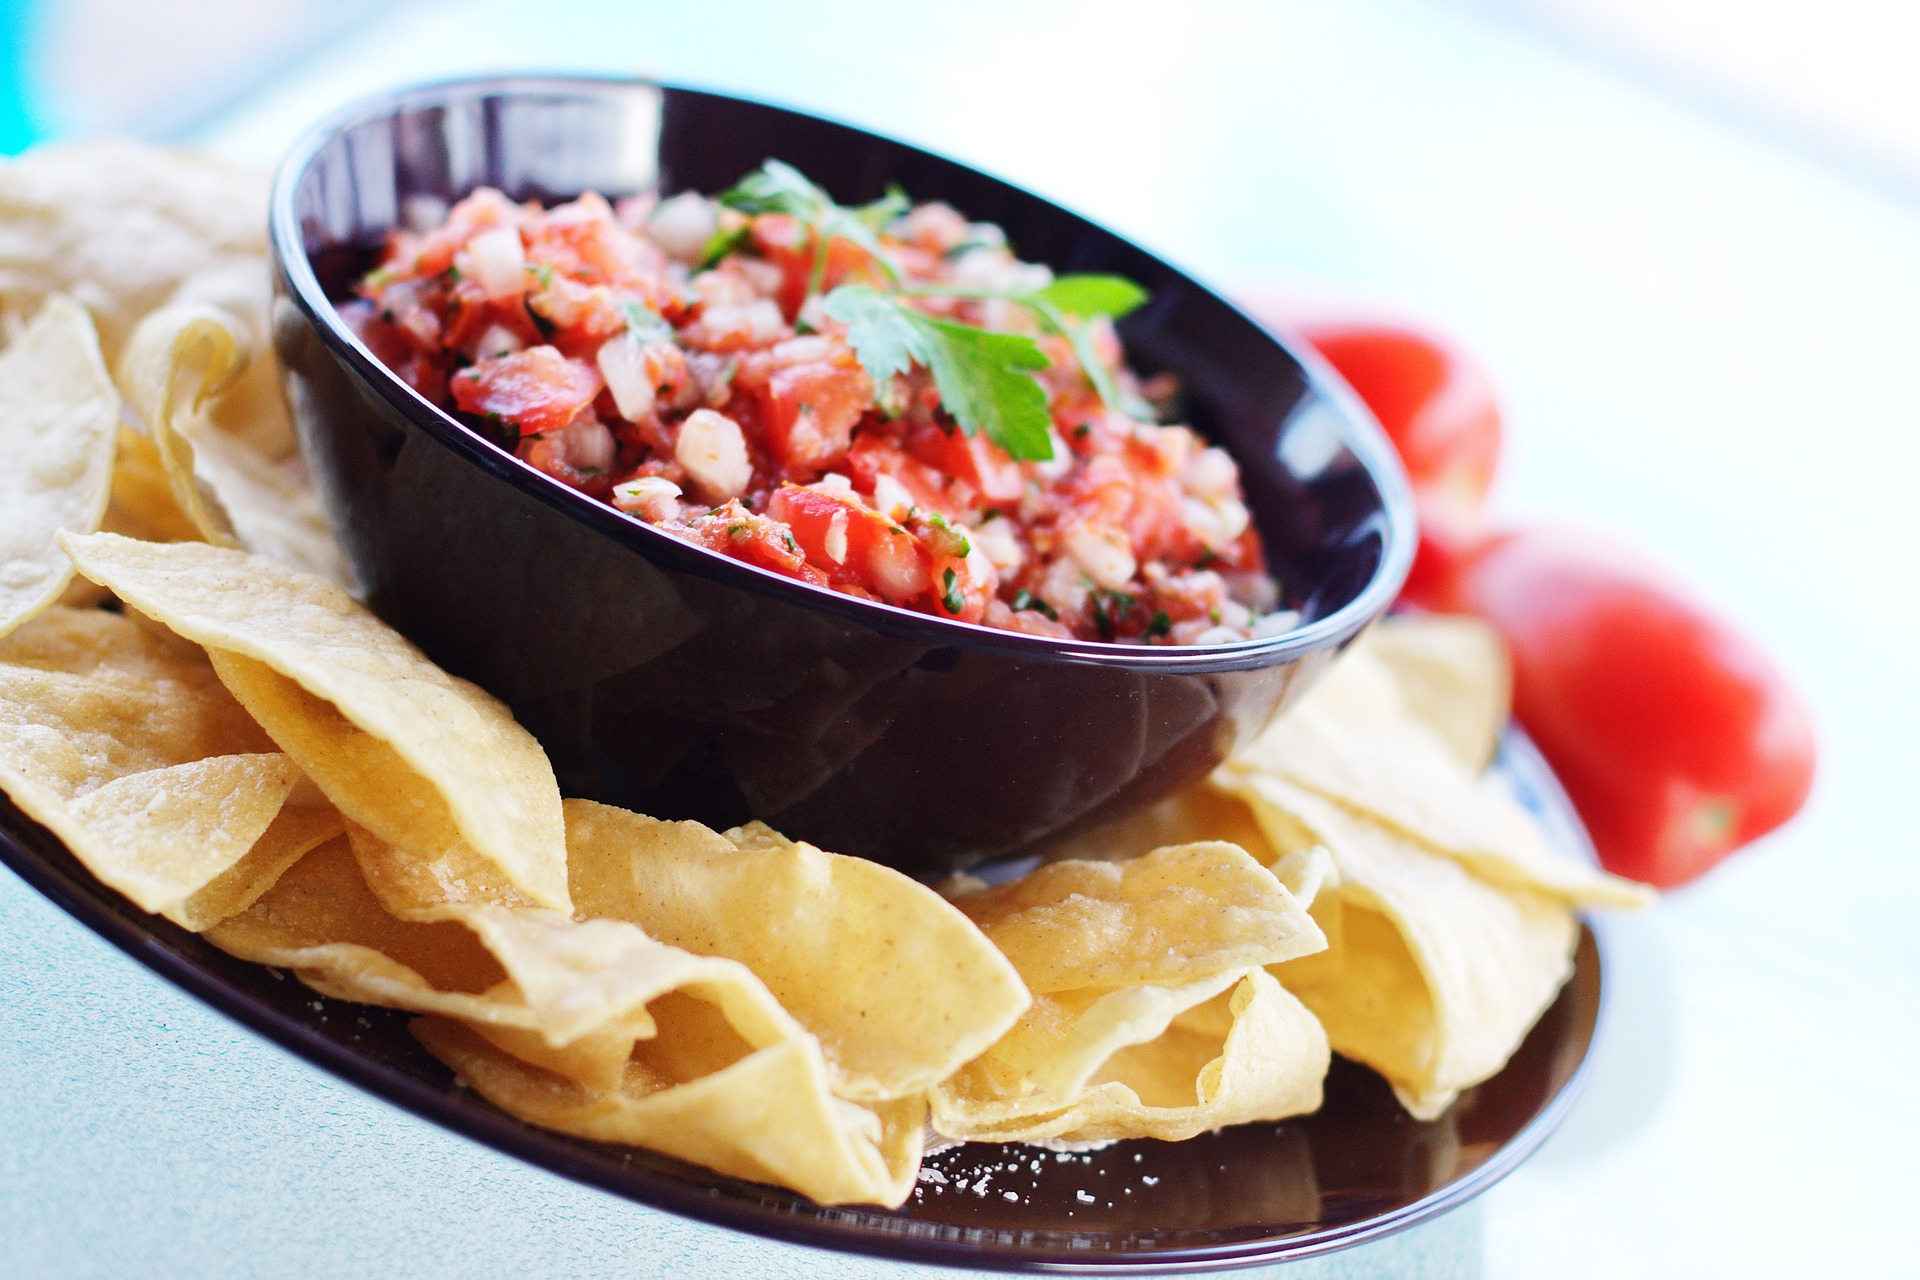 chips and salsa generic_1551282054216.jpg.jpg